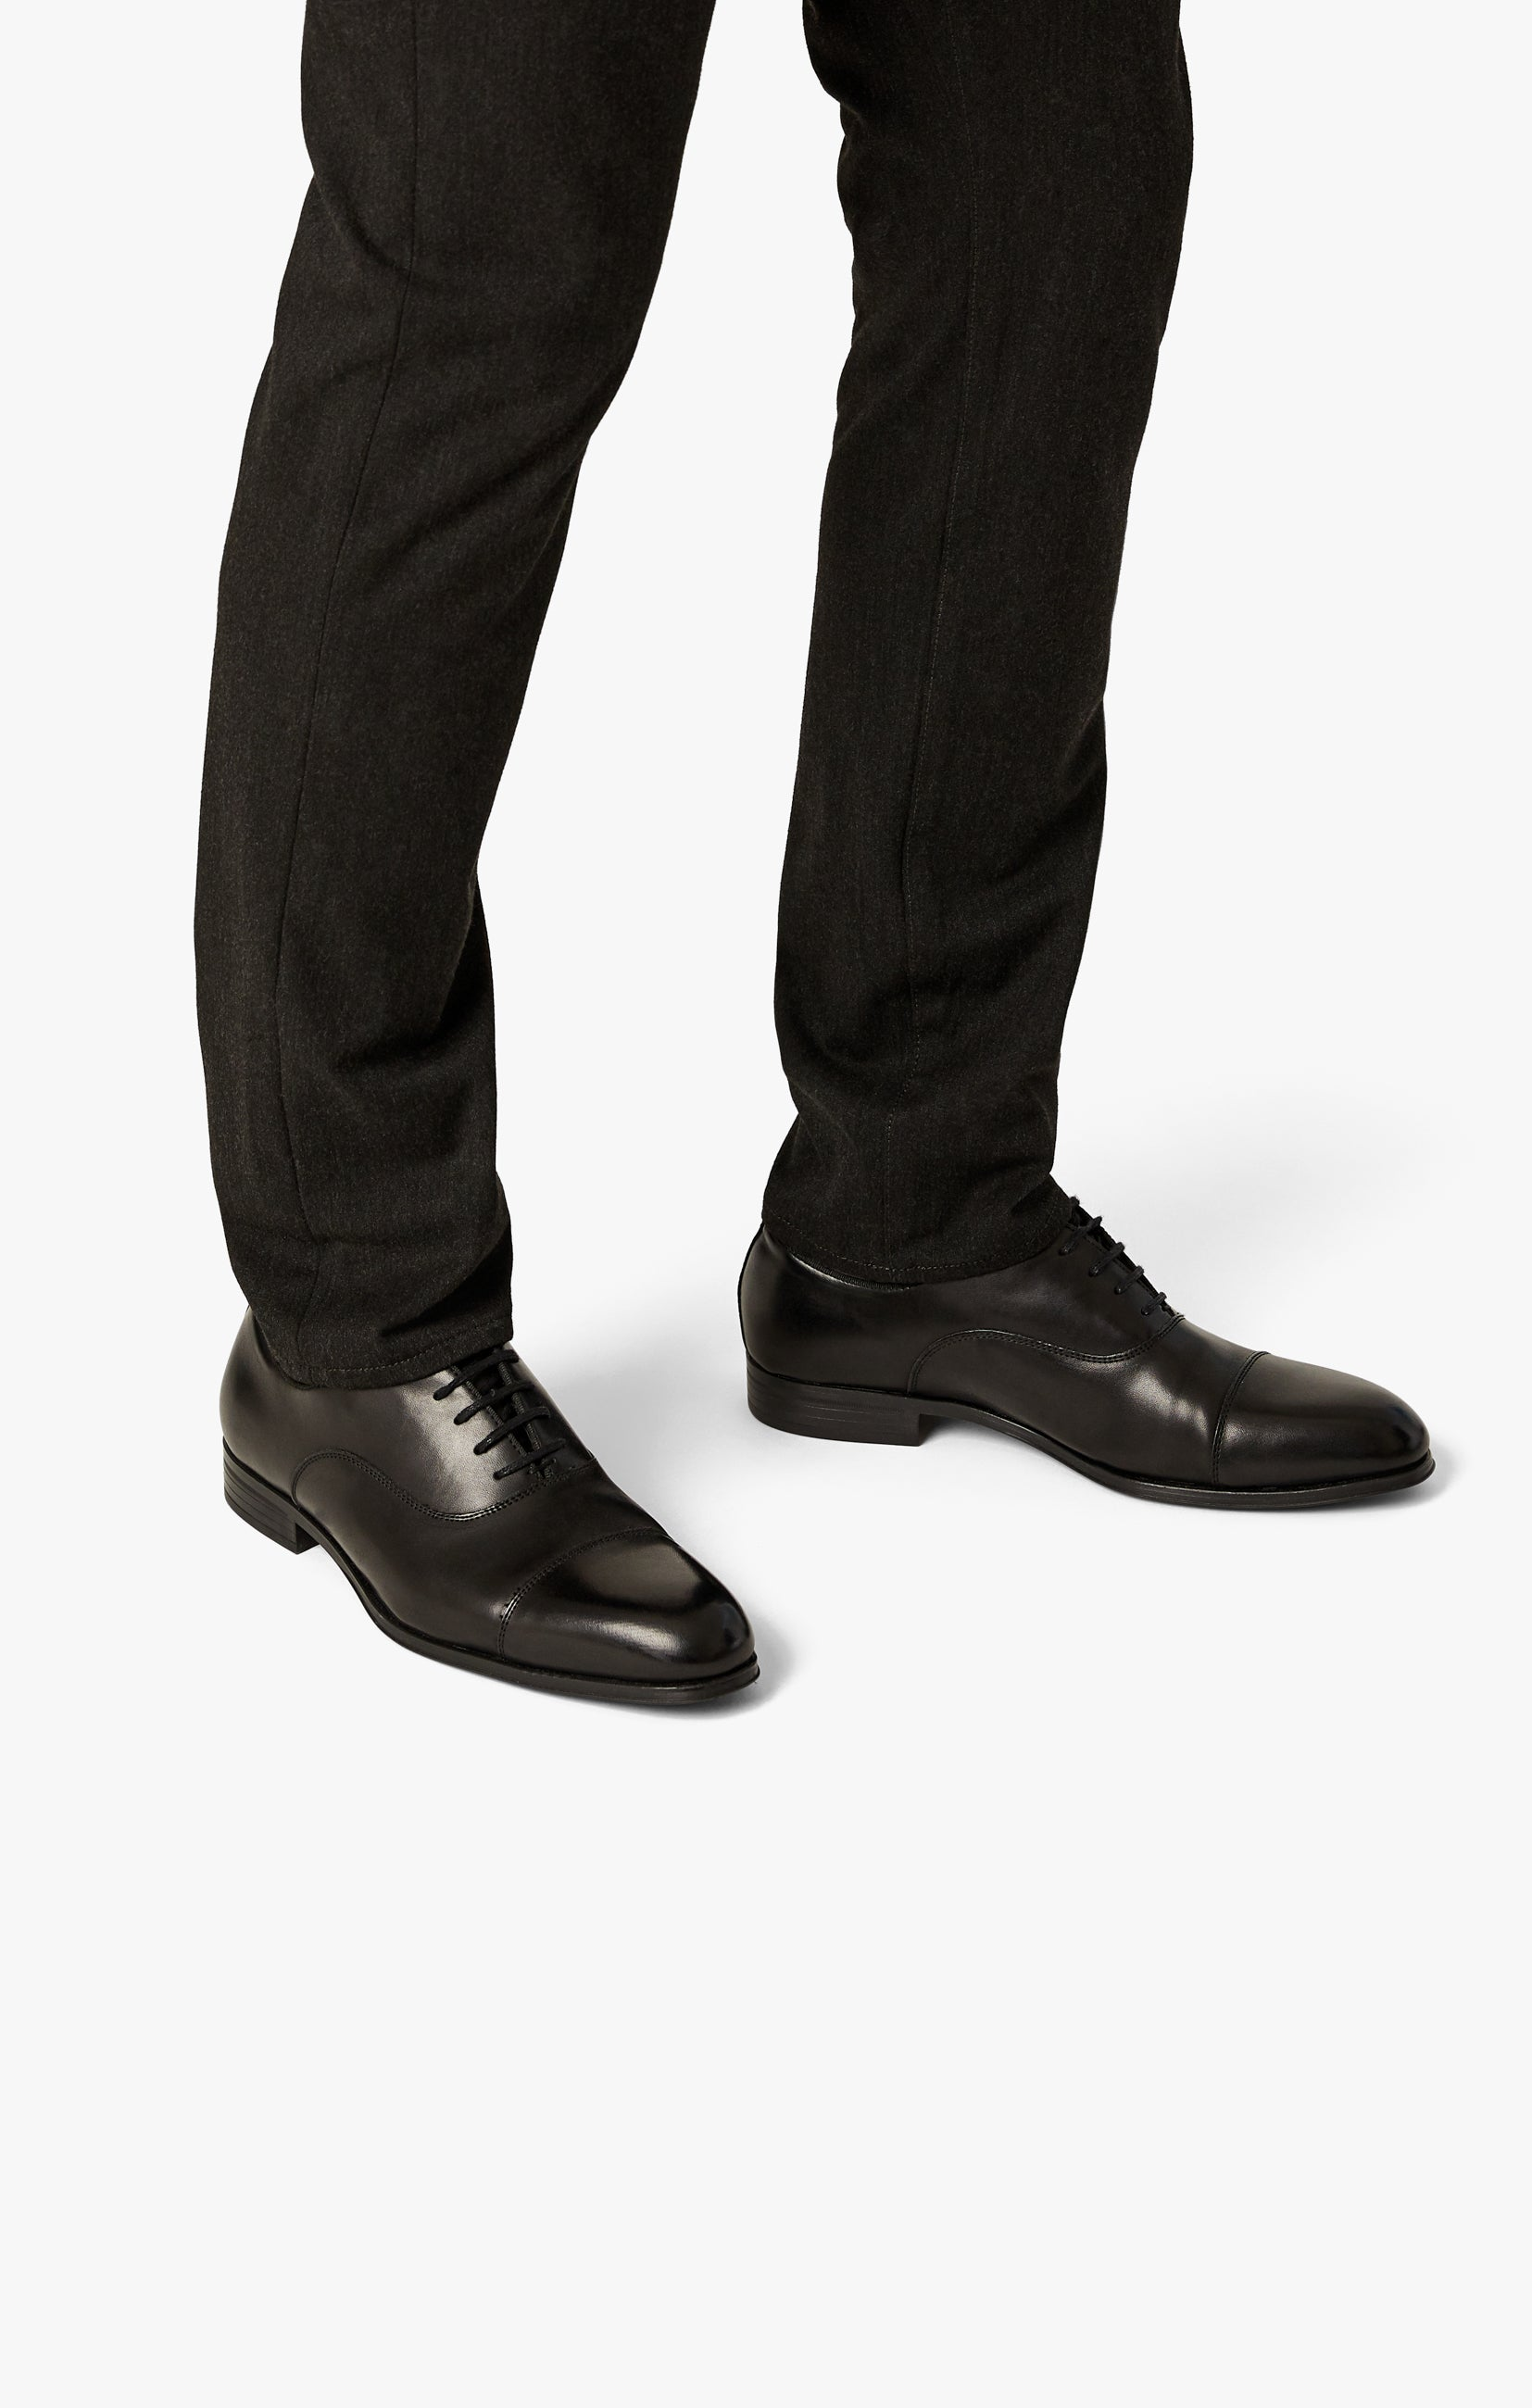 Cool Tapered Leg Pants In Charcoal Winter Cashmere Image 8